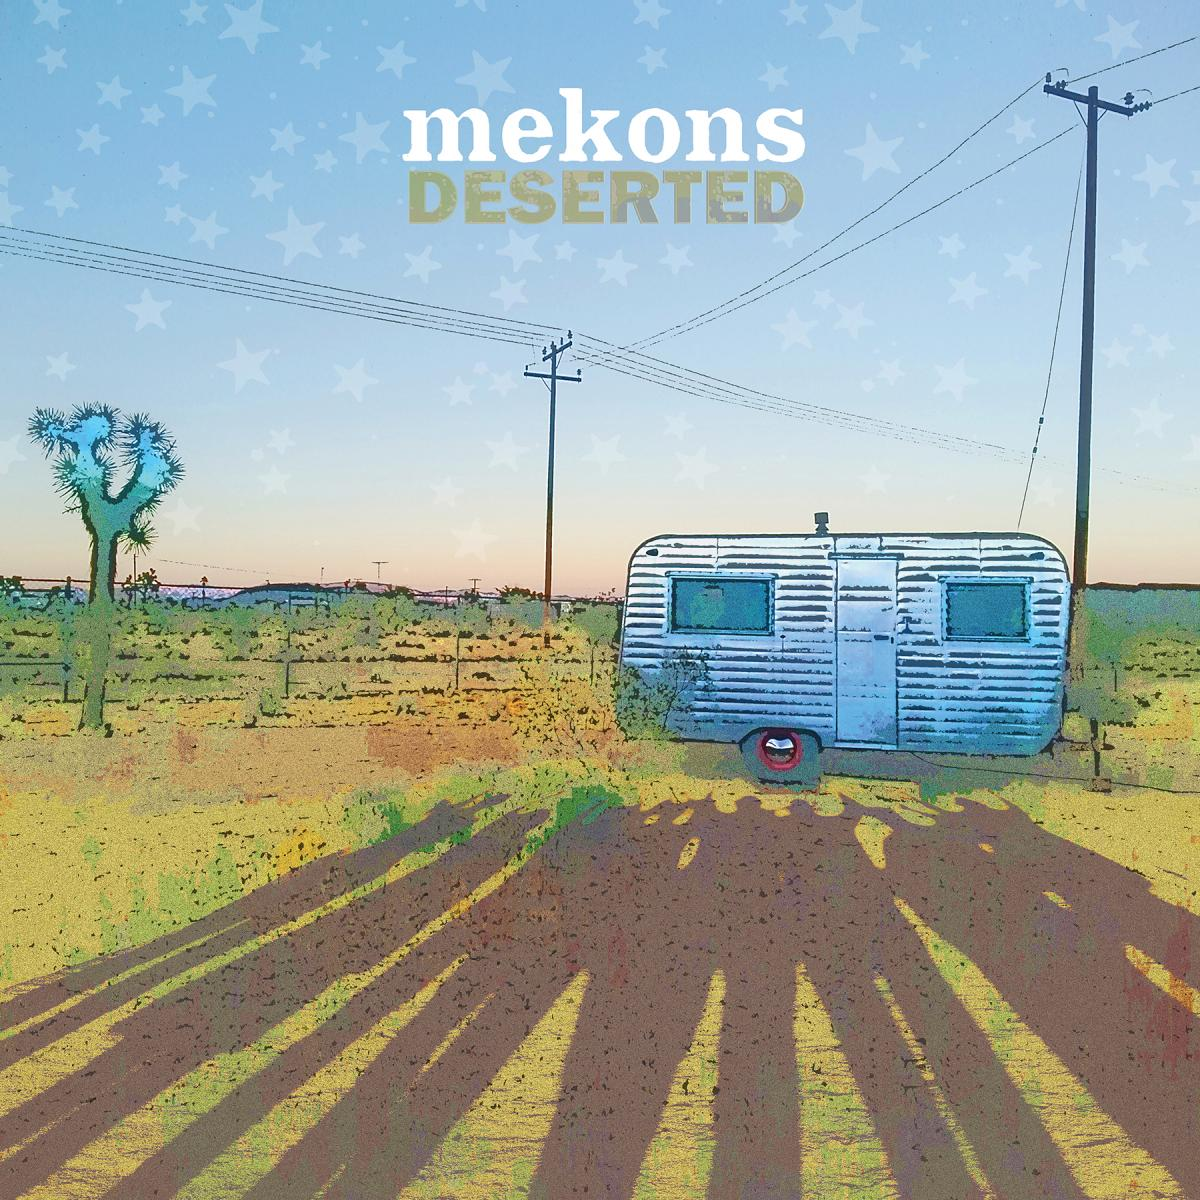 Mekons Deserted Album Art